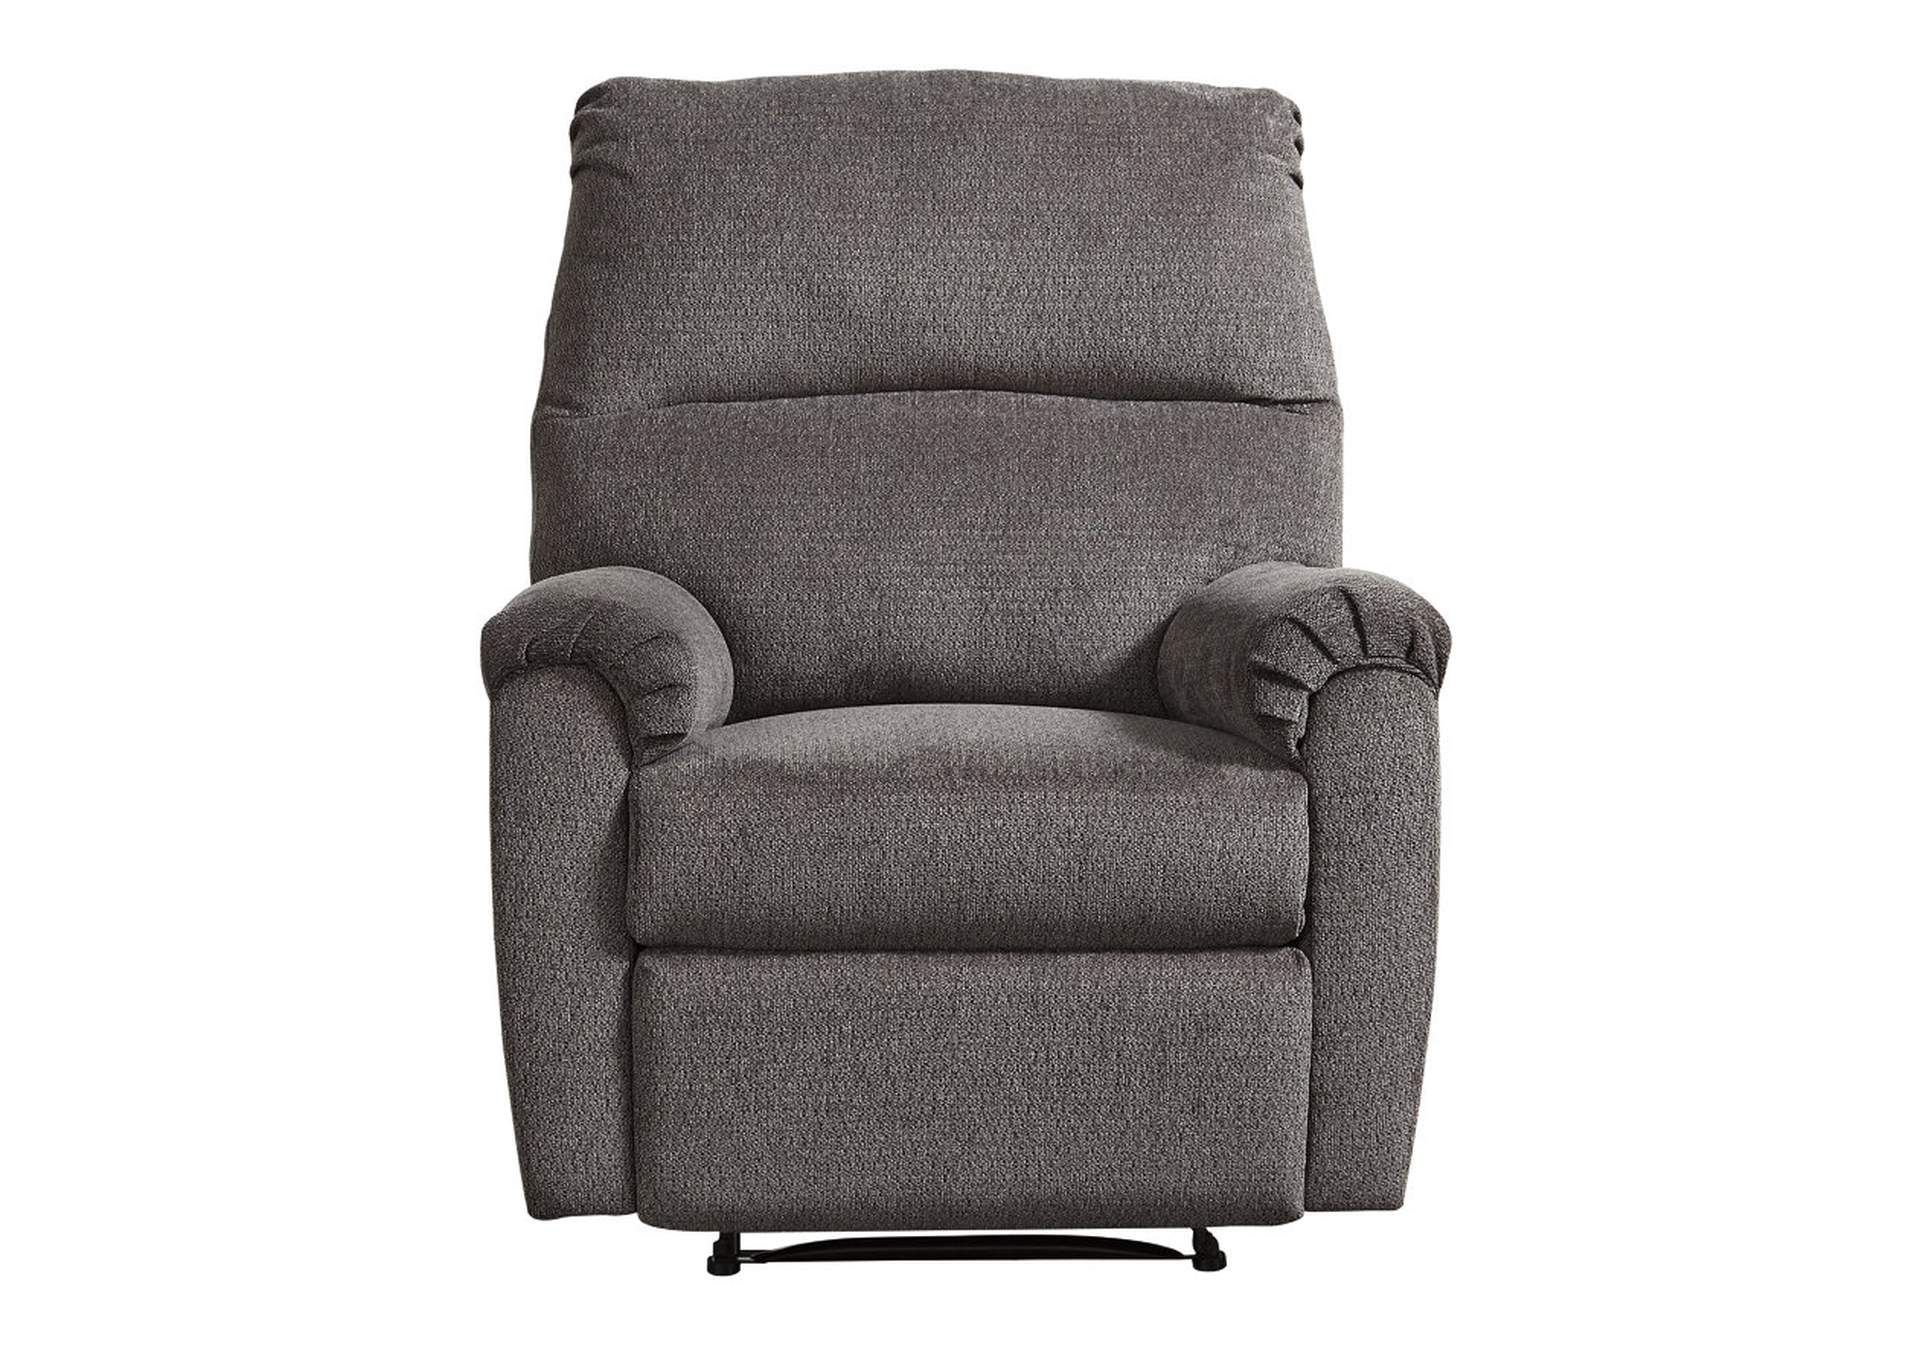 Nerviano Gray Recliner,Signature Design By Ashley